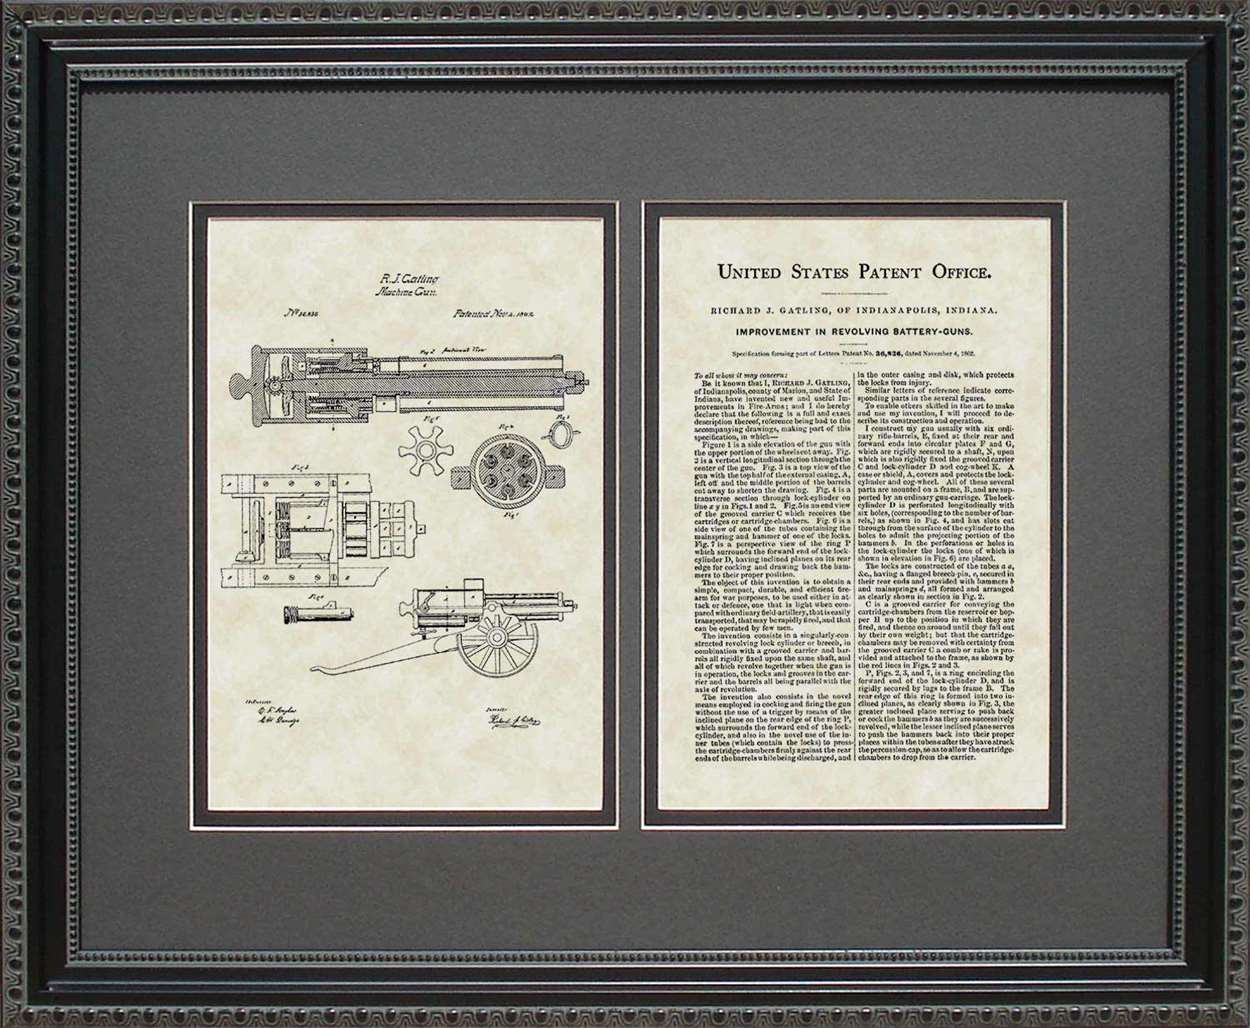 Gatling Gun Patent, Art & Copy, Gatling, 1862, 16x20